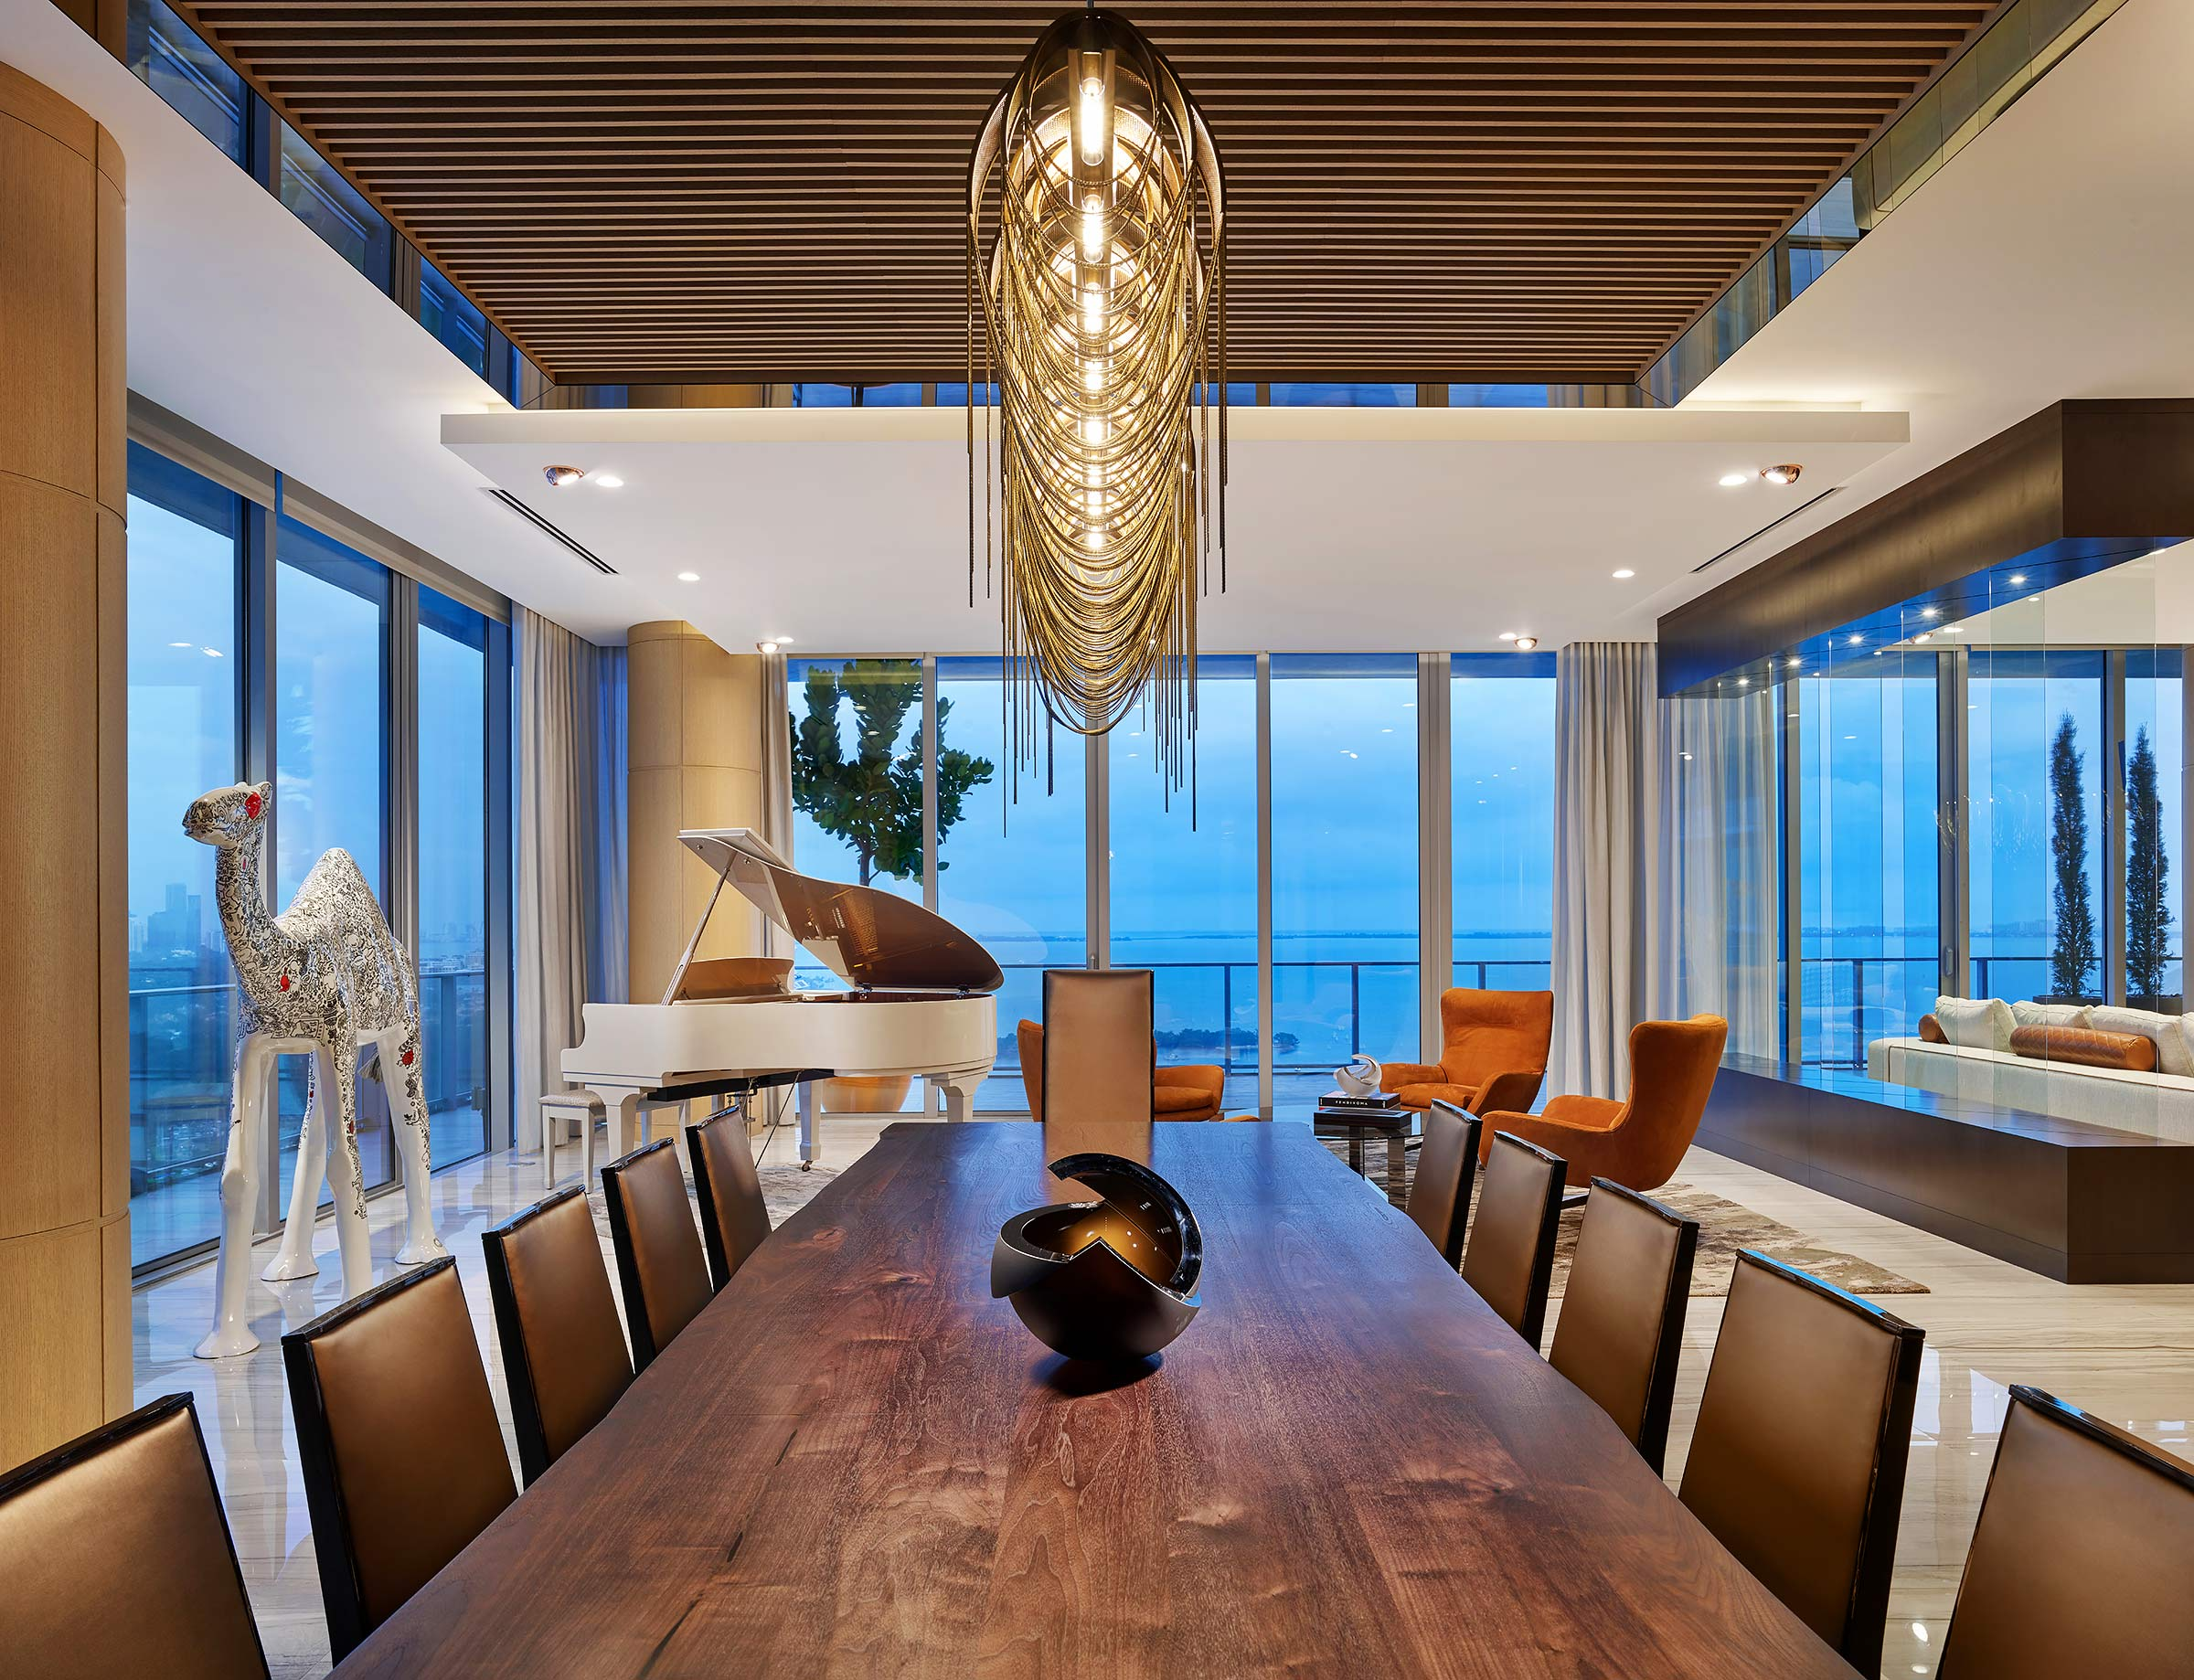 Fort-Lauderdale-Beach-High-Rise-Twilight-View-Interior-Piano